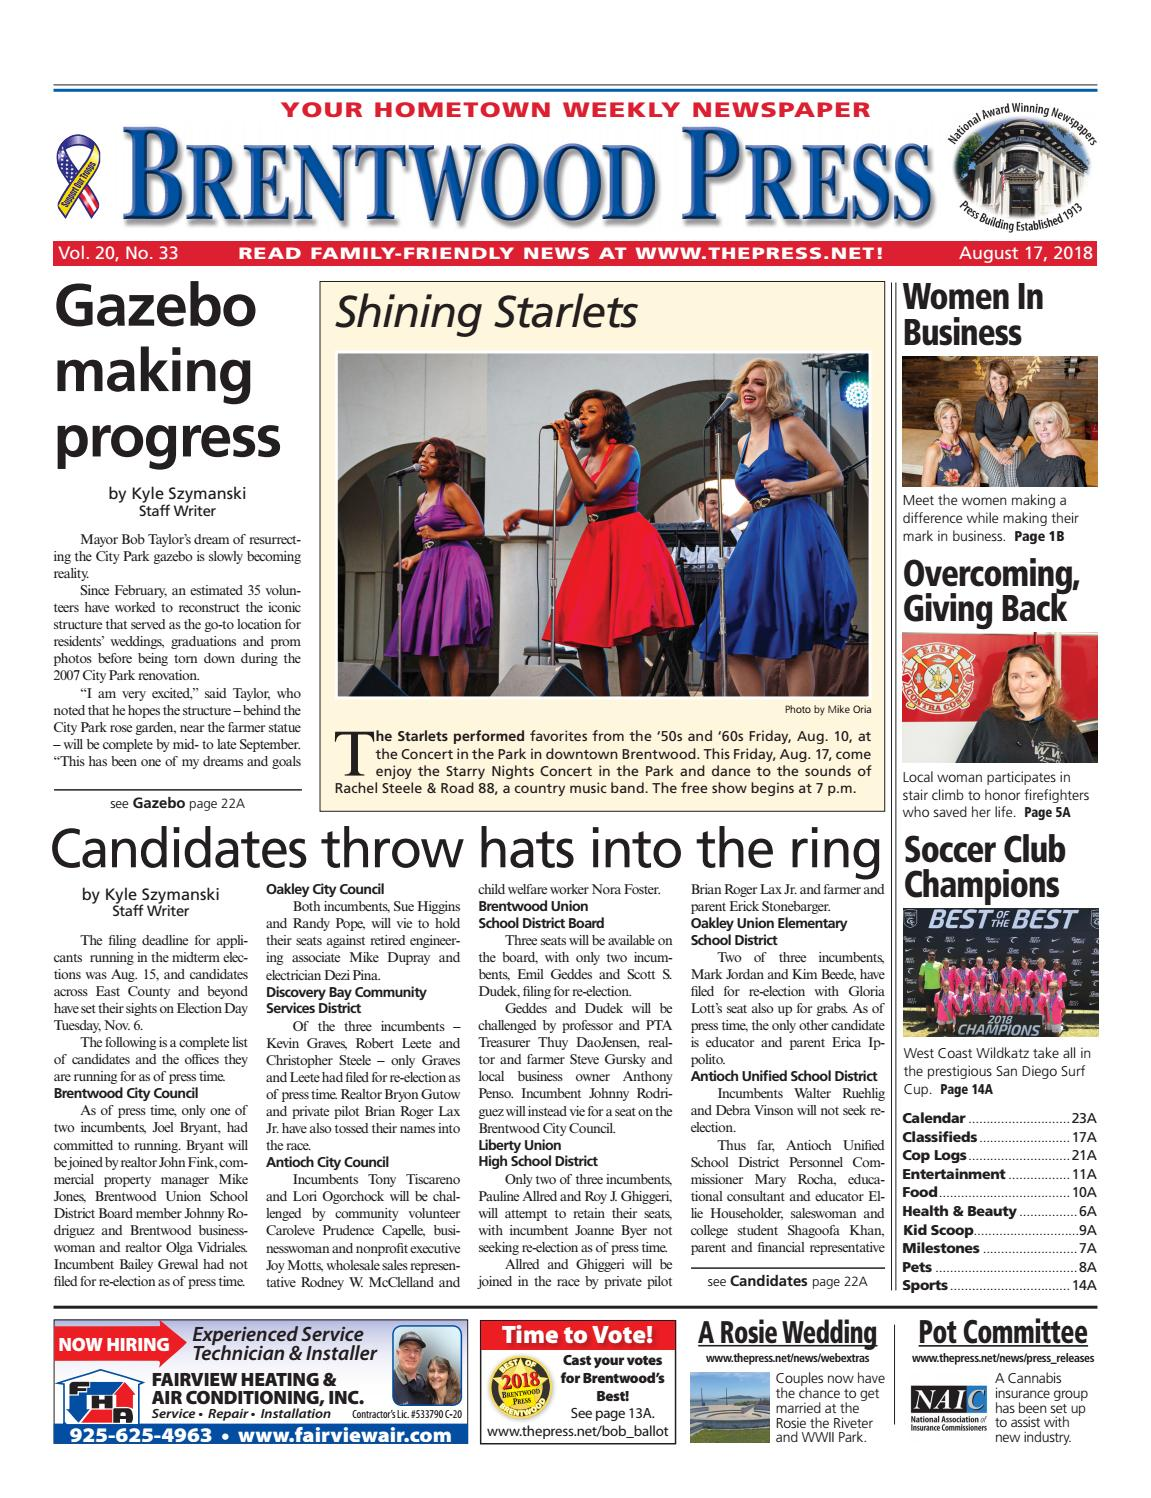 Brentwood Press 08.17.18 by Brentwood Press   Publishing - issuu ffa316c4d